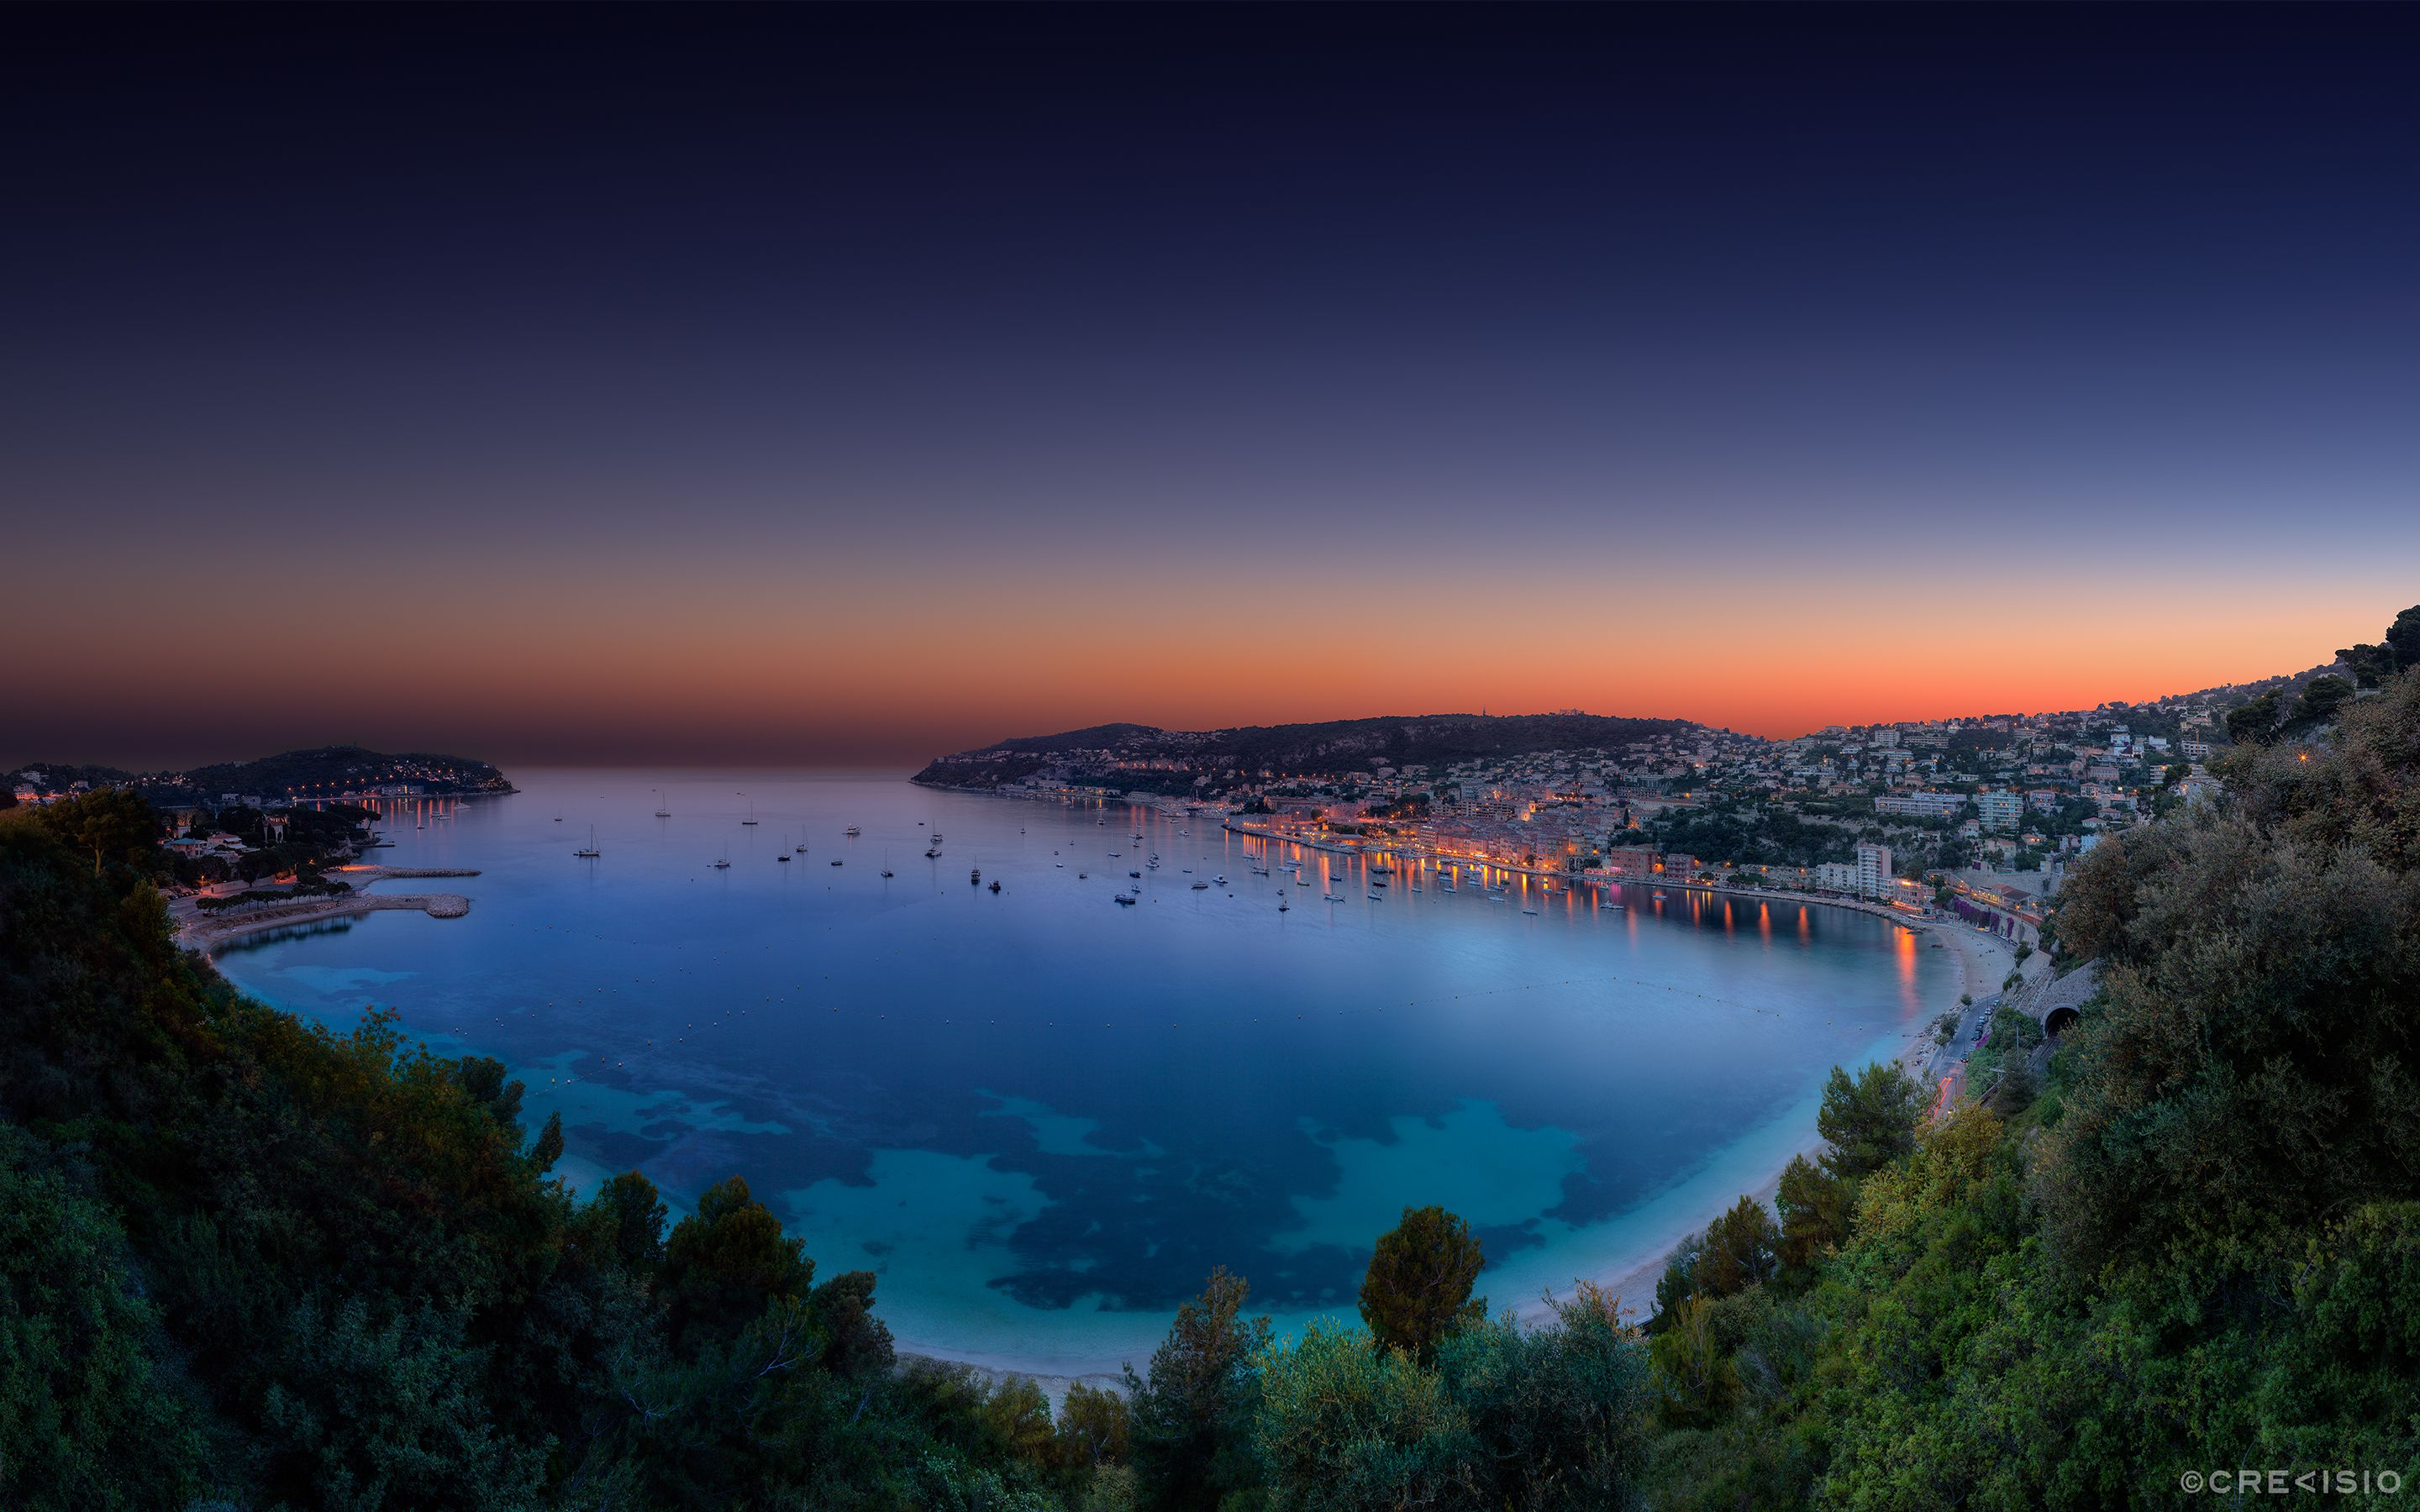 Evening Twilight Sunset Hdr Panorama Over Villefranche Sur